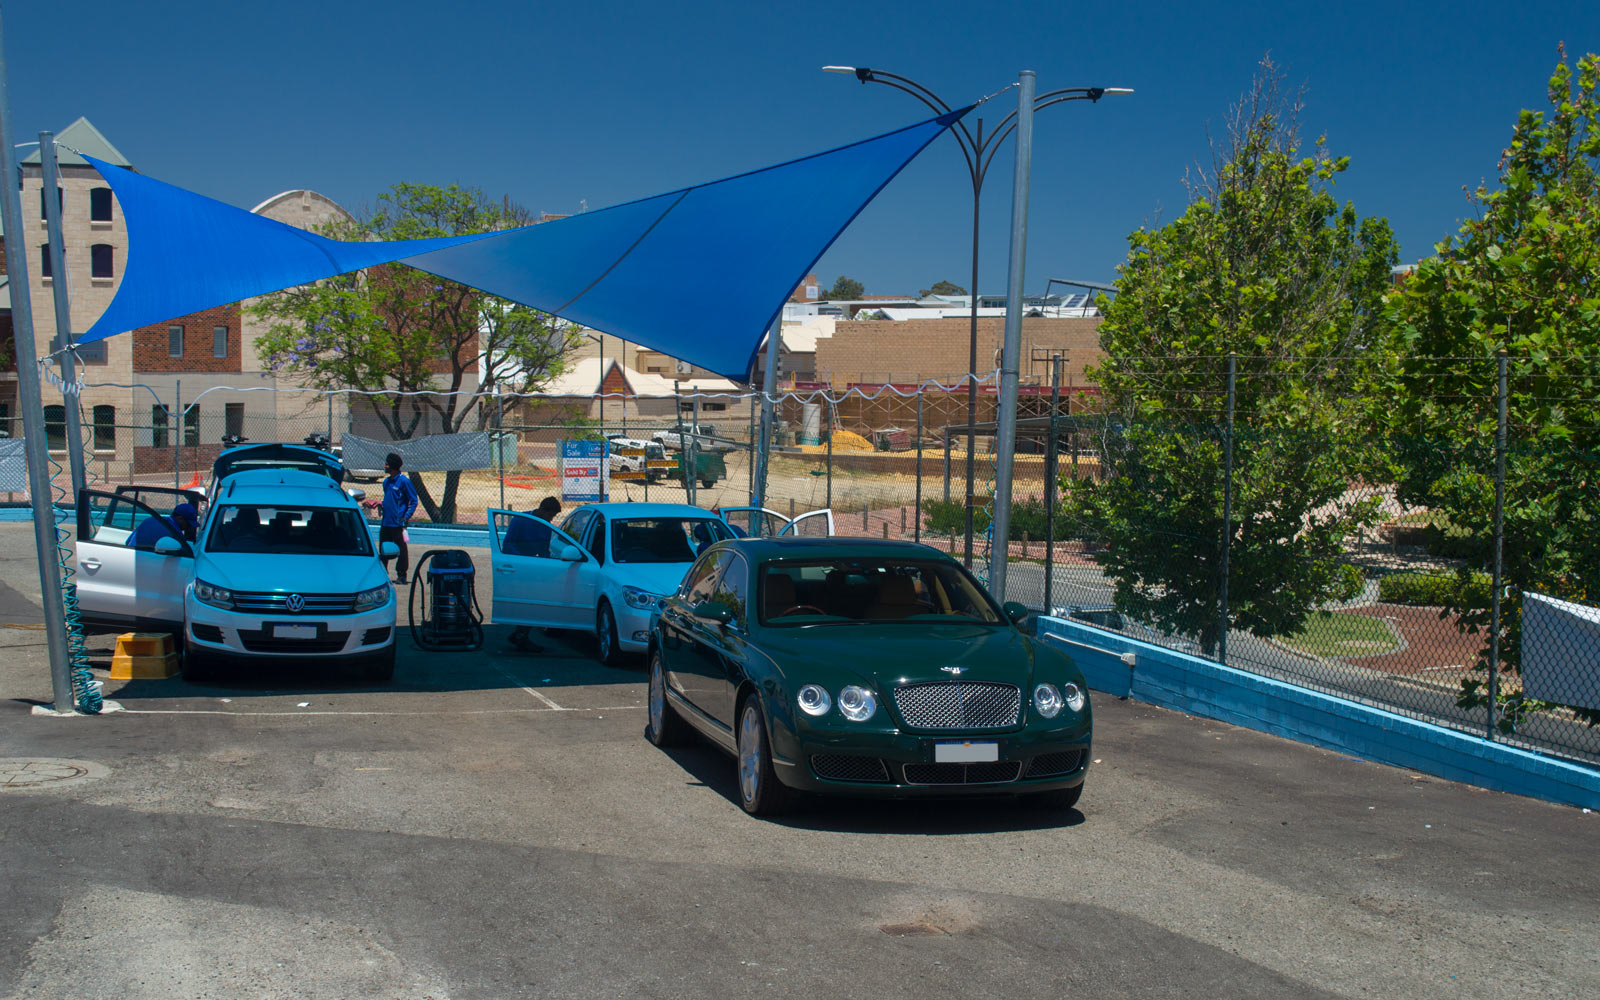 Impeccable Hand Car Wash & Detailing Subiaco